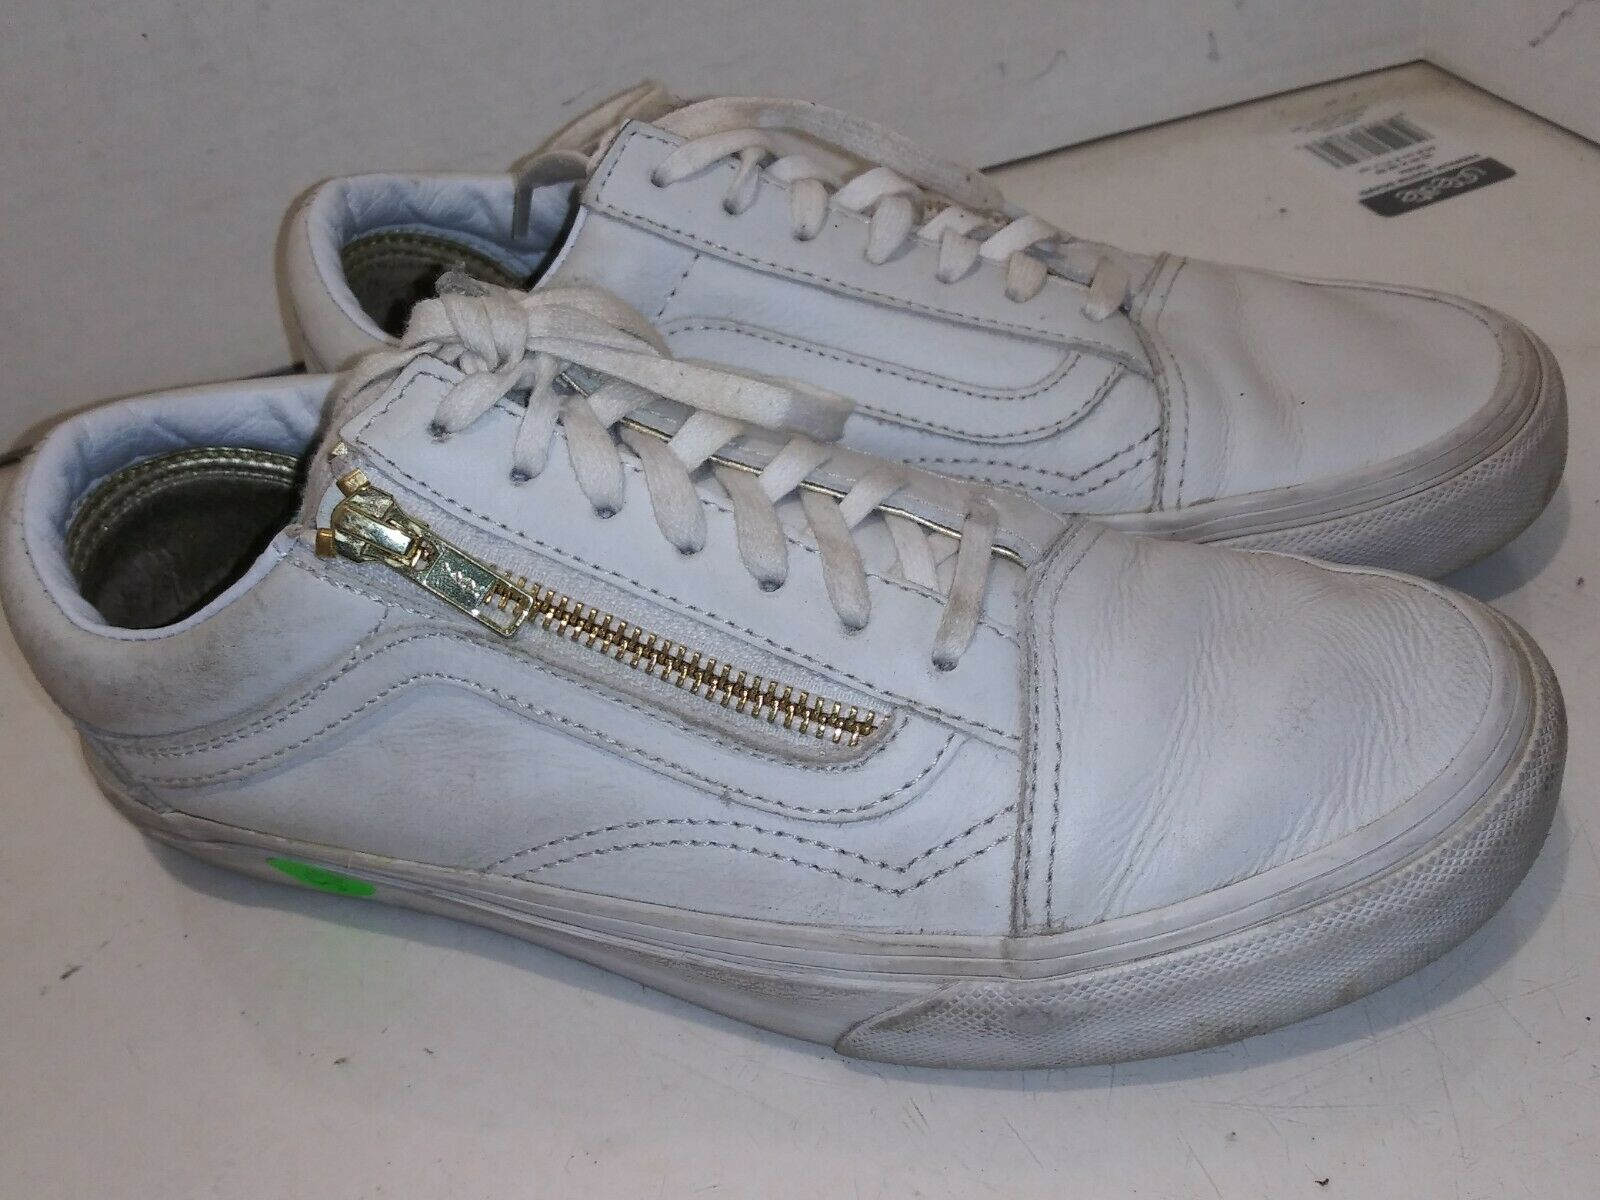 Vans White Leather Size gold Zipper Sneakers Low Womens Size 7.5 M